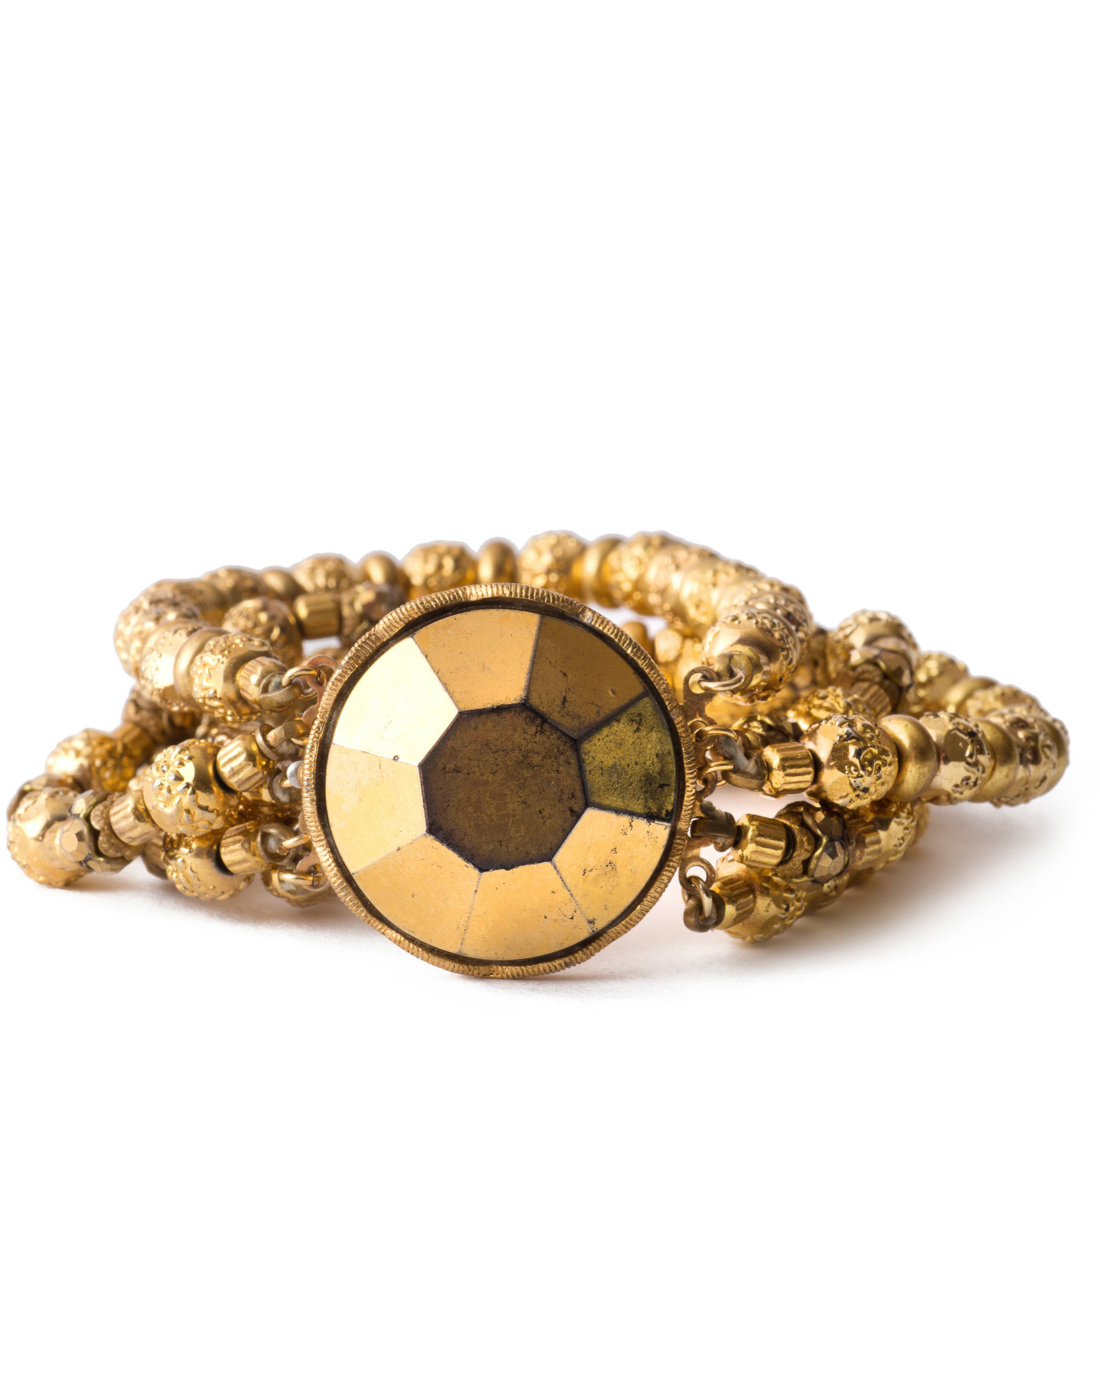 Victorian Gold Nailhead Beaded Bracelet by Alice Caviness, circa 1940's